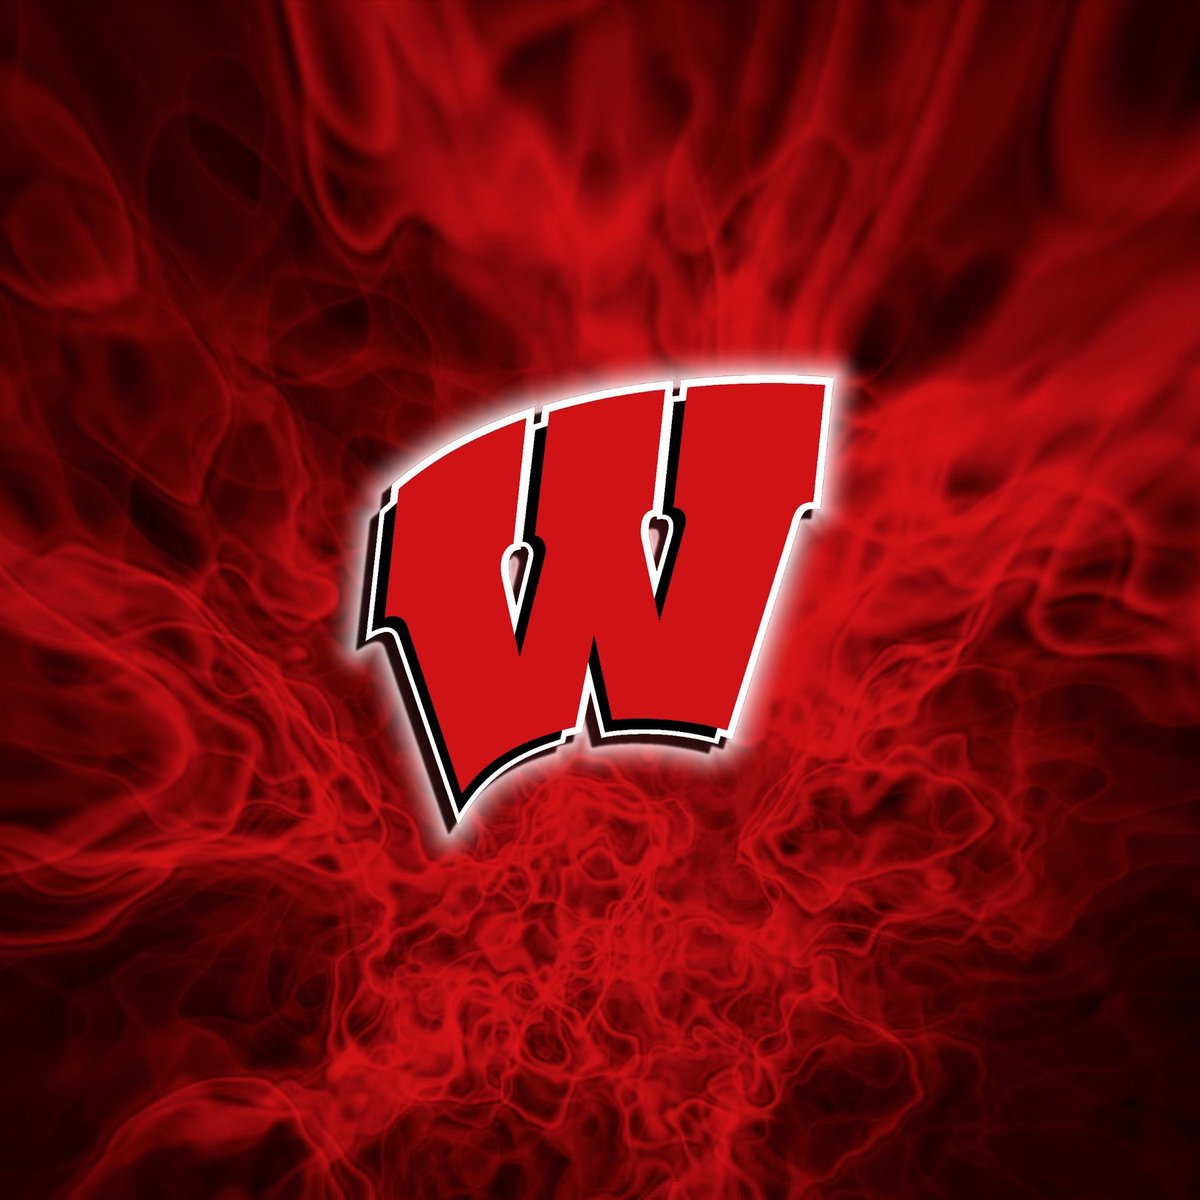 BLESSED TO HAVE RECIEVED AN OFFER FROM UNIVERSITY OF WISCONSIN <br>http://pic.twitter.com/OR8j5LlT0L